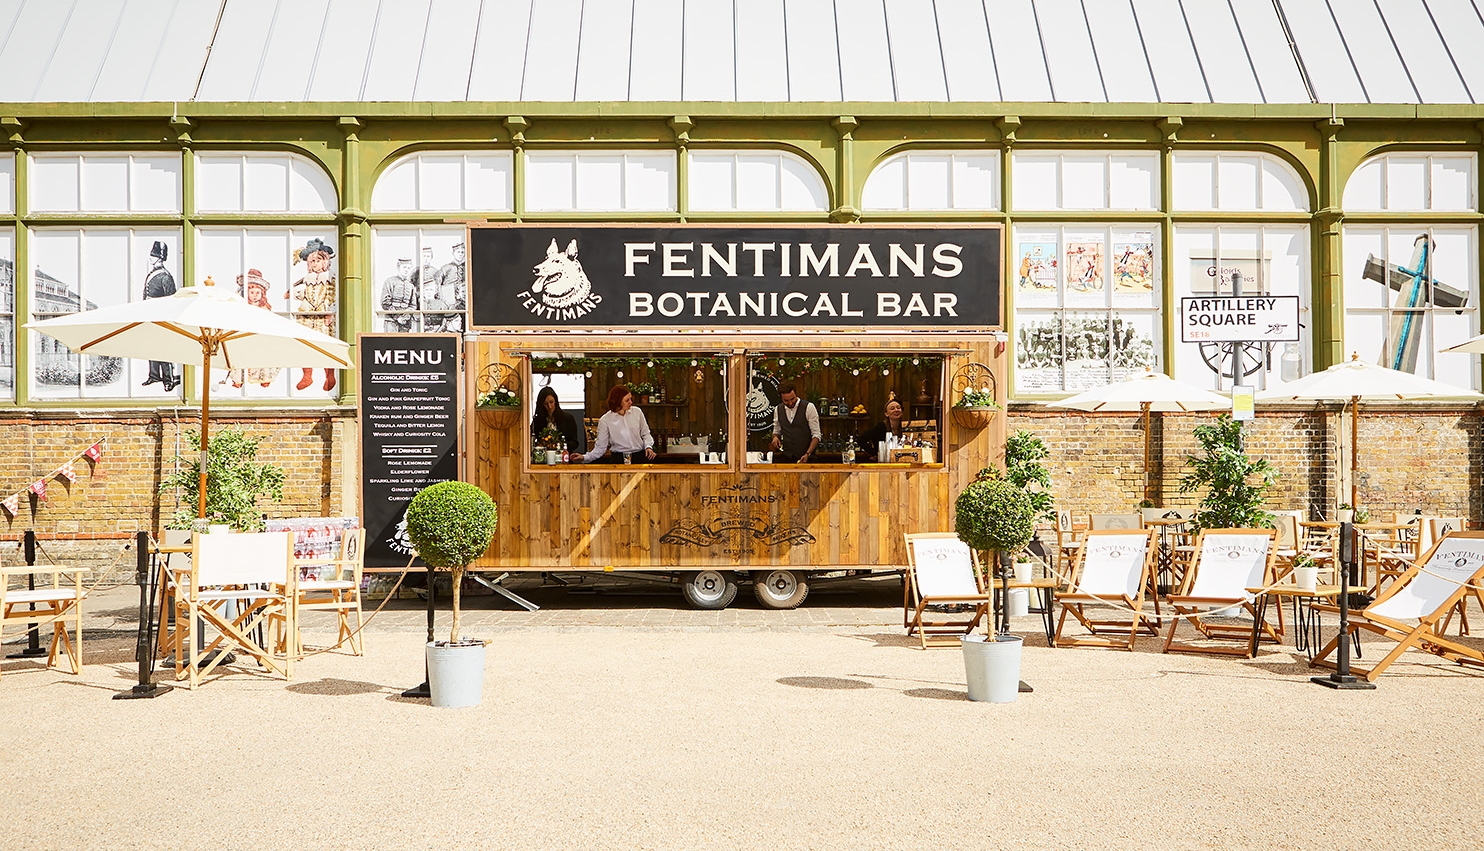 Fentimans Botanical Bar at Event - Quirky Group Mobile Bars and Event Management